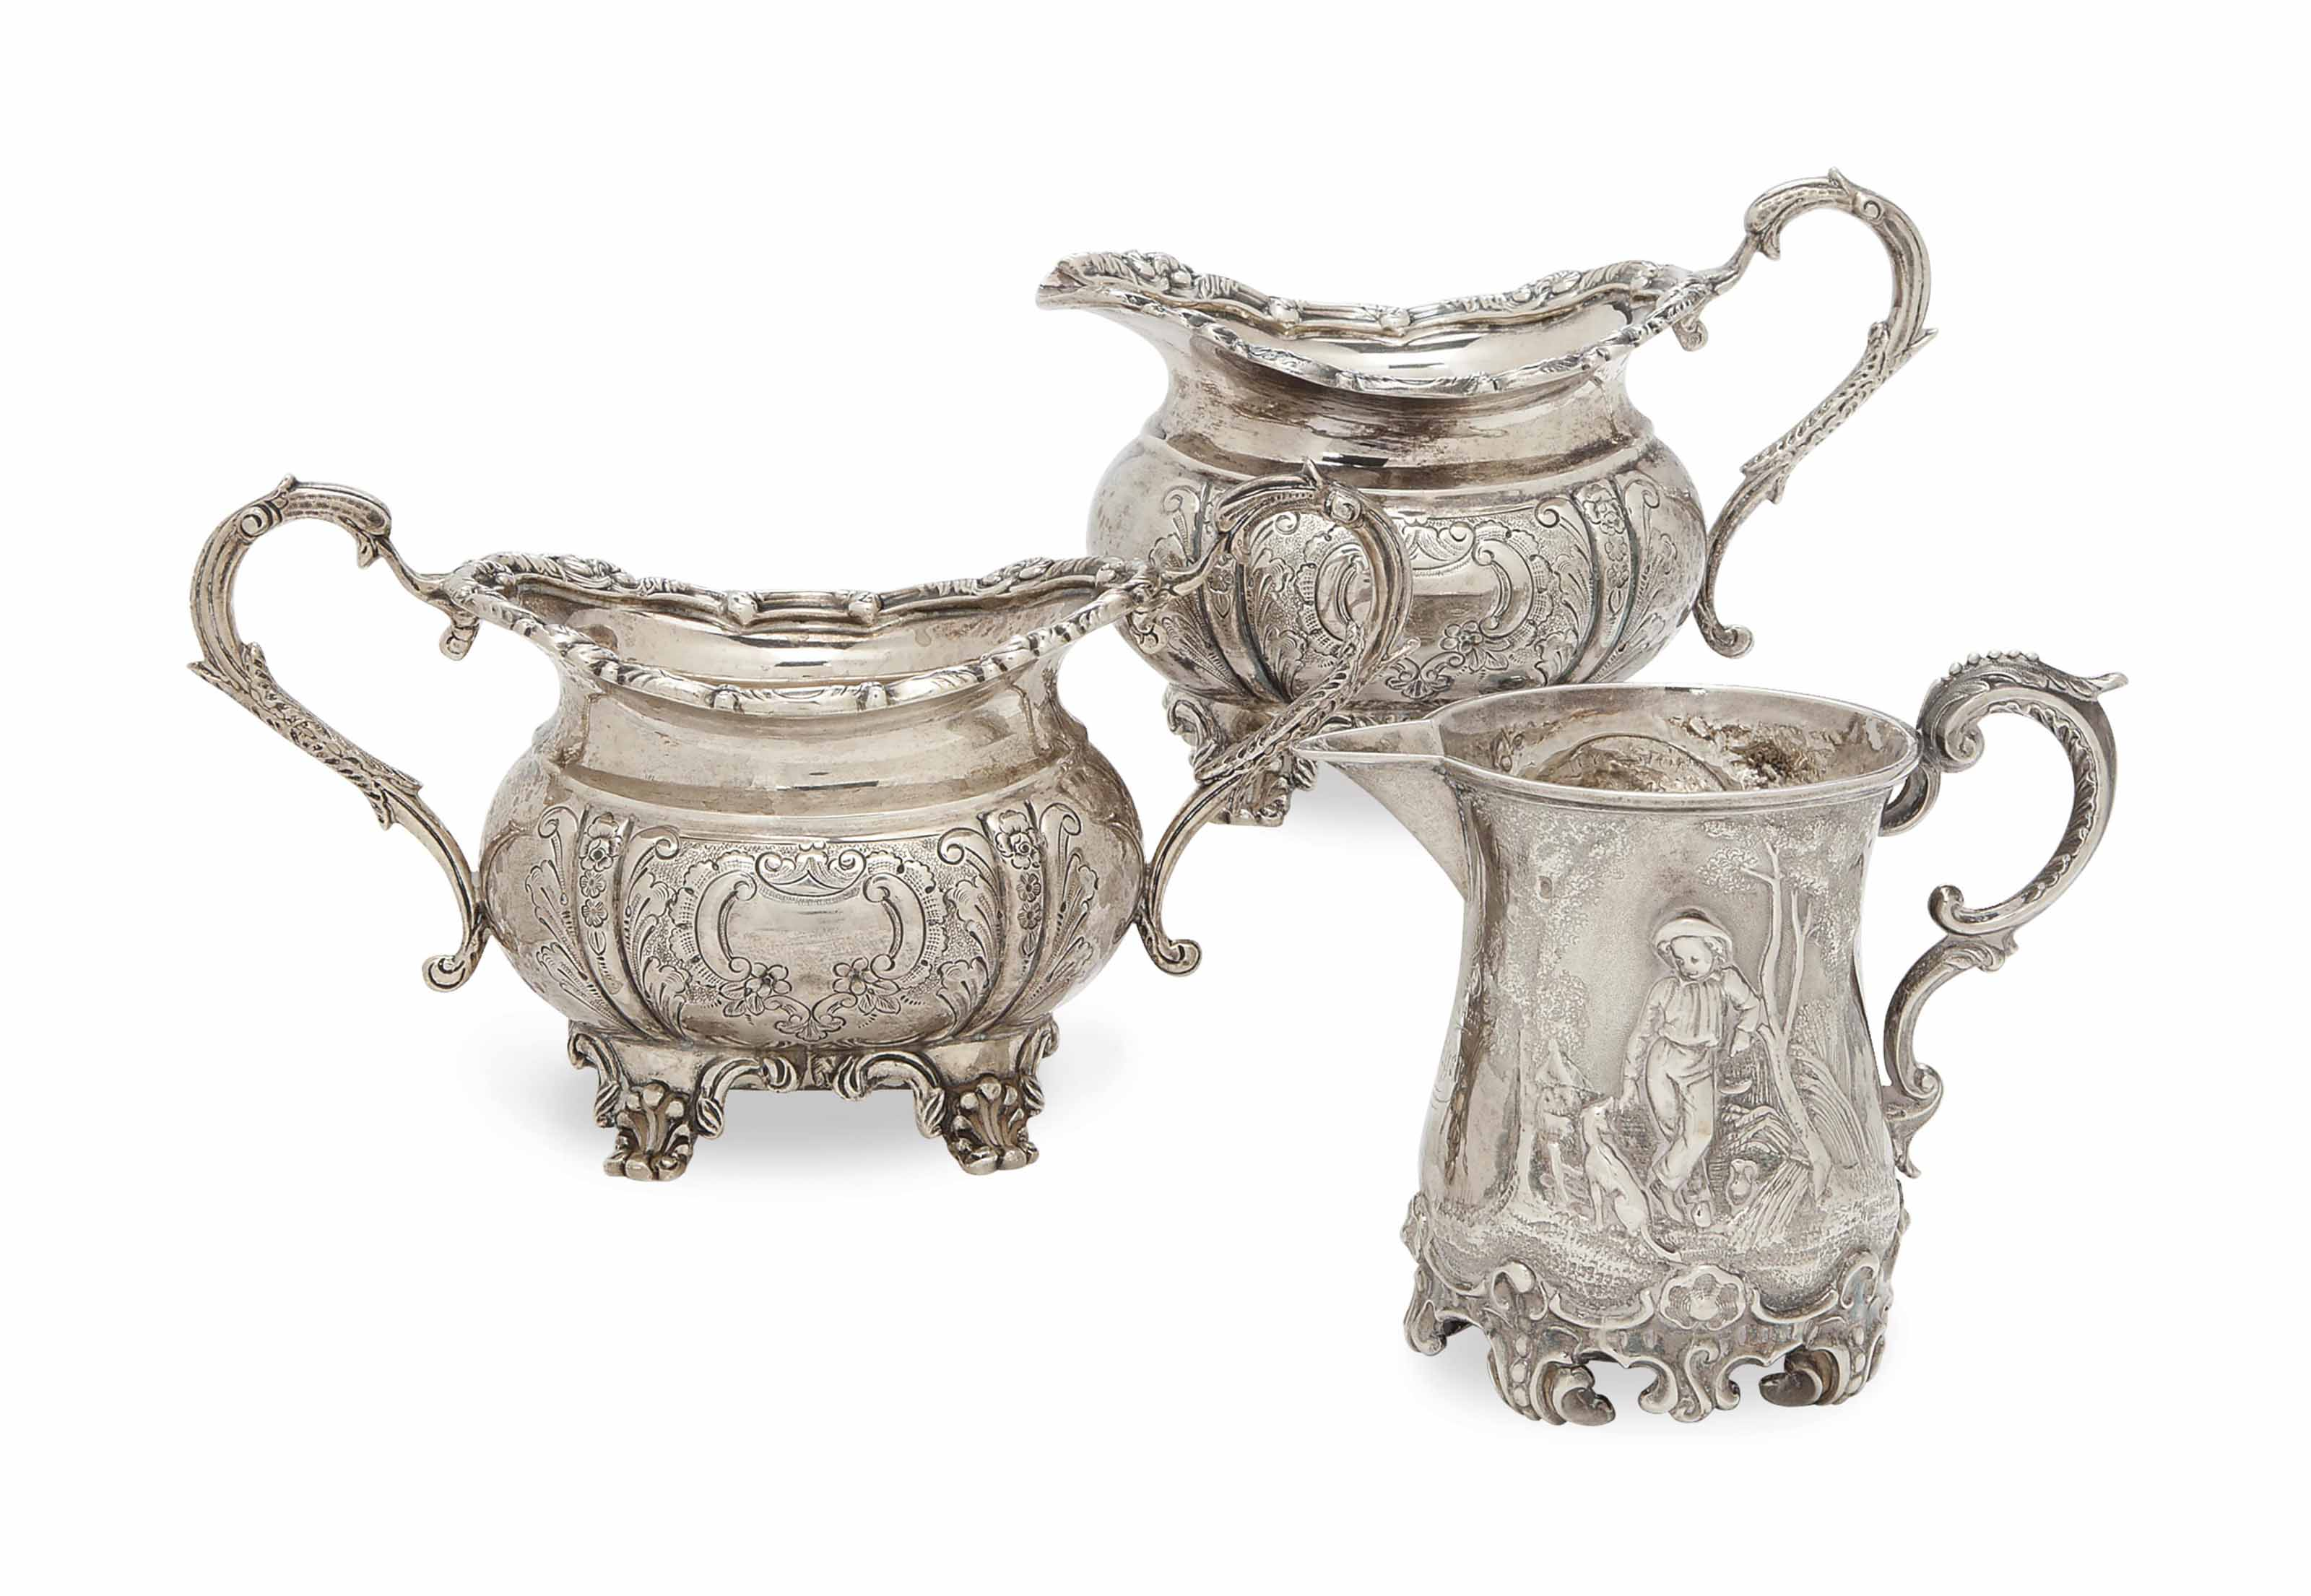 AN ENGLISH SILVER THREE-PIECE TEA SERVICE, AND A REPOUSSE MILK JUG,